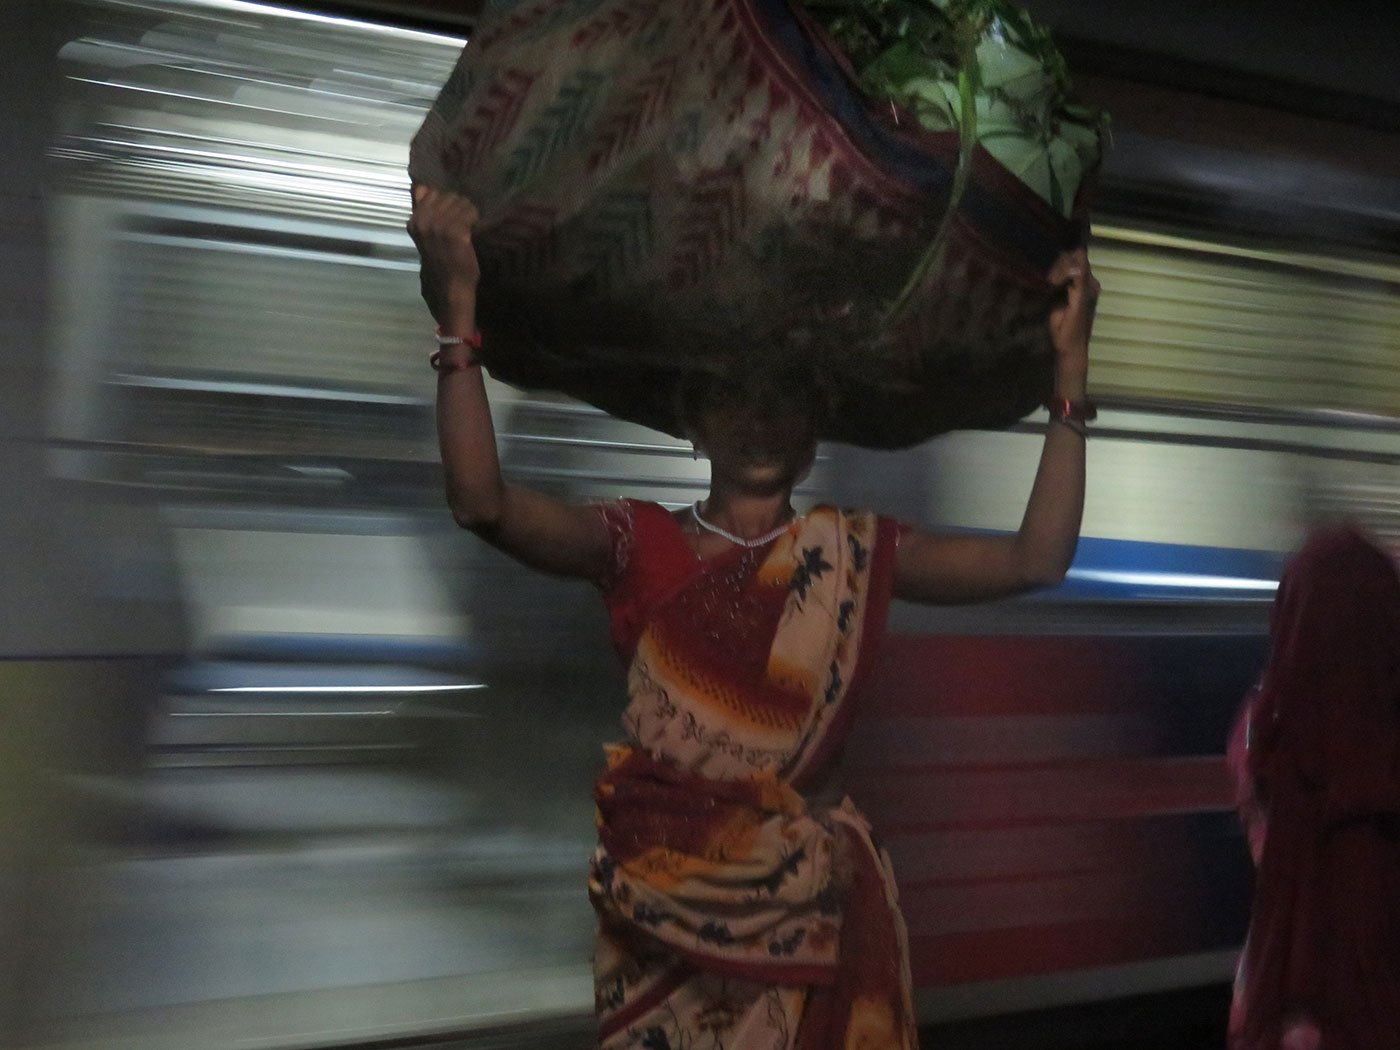 Tulshi, carrying a 35 kg load of palash leaves wrapped in an old sari, at the train station